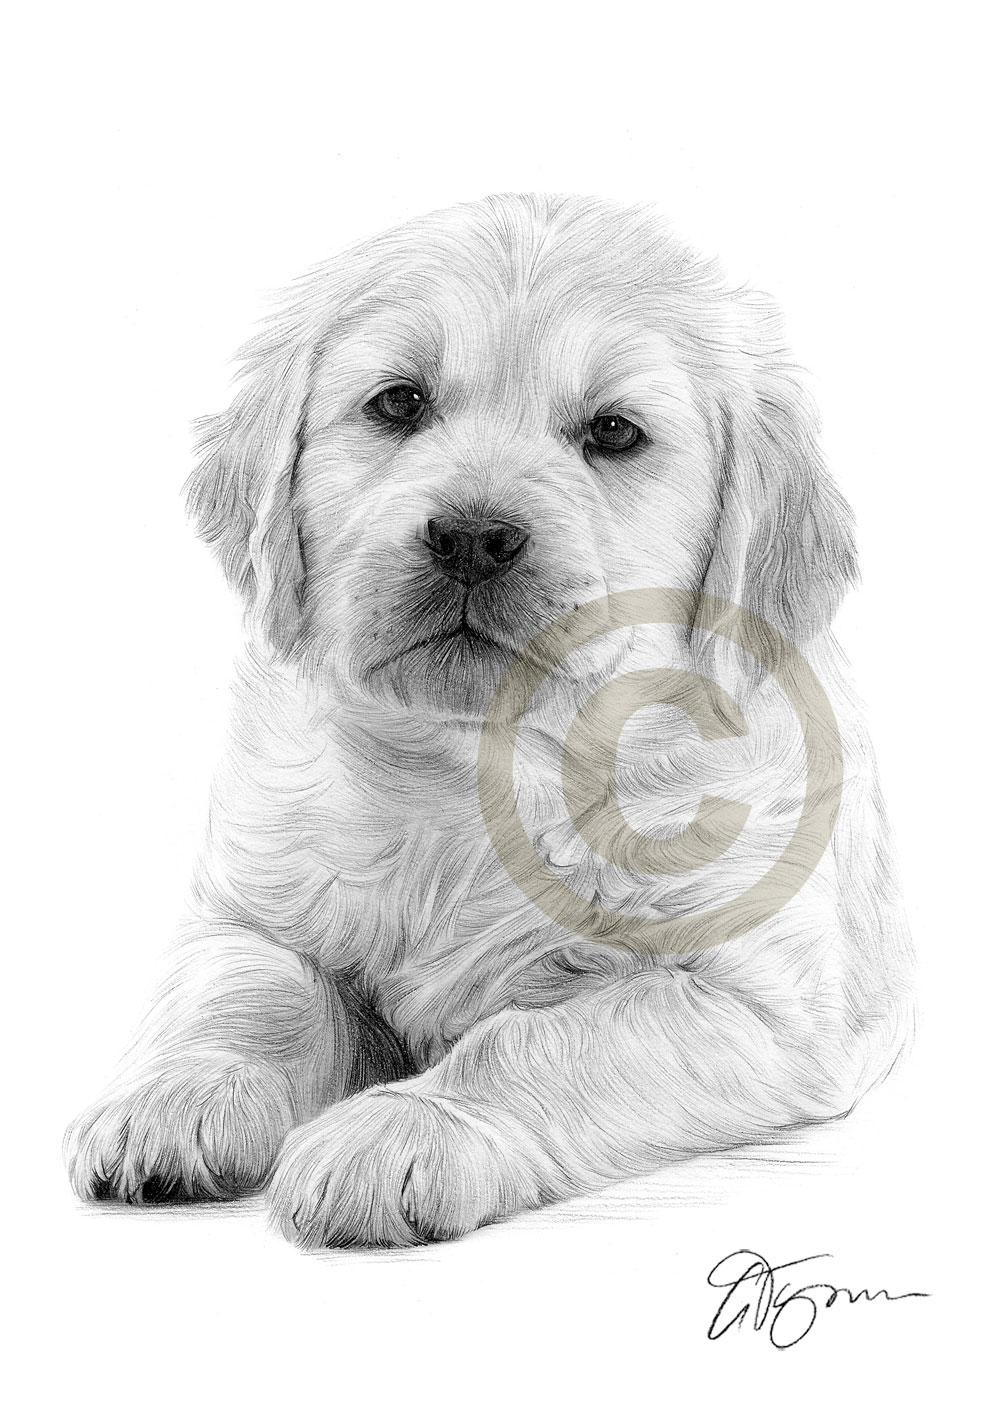 Drawn puppy golden retriever puppy Only Dog a  puppy